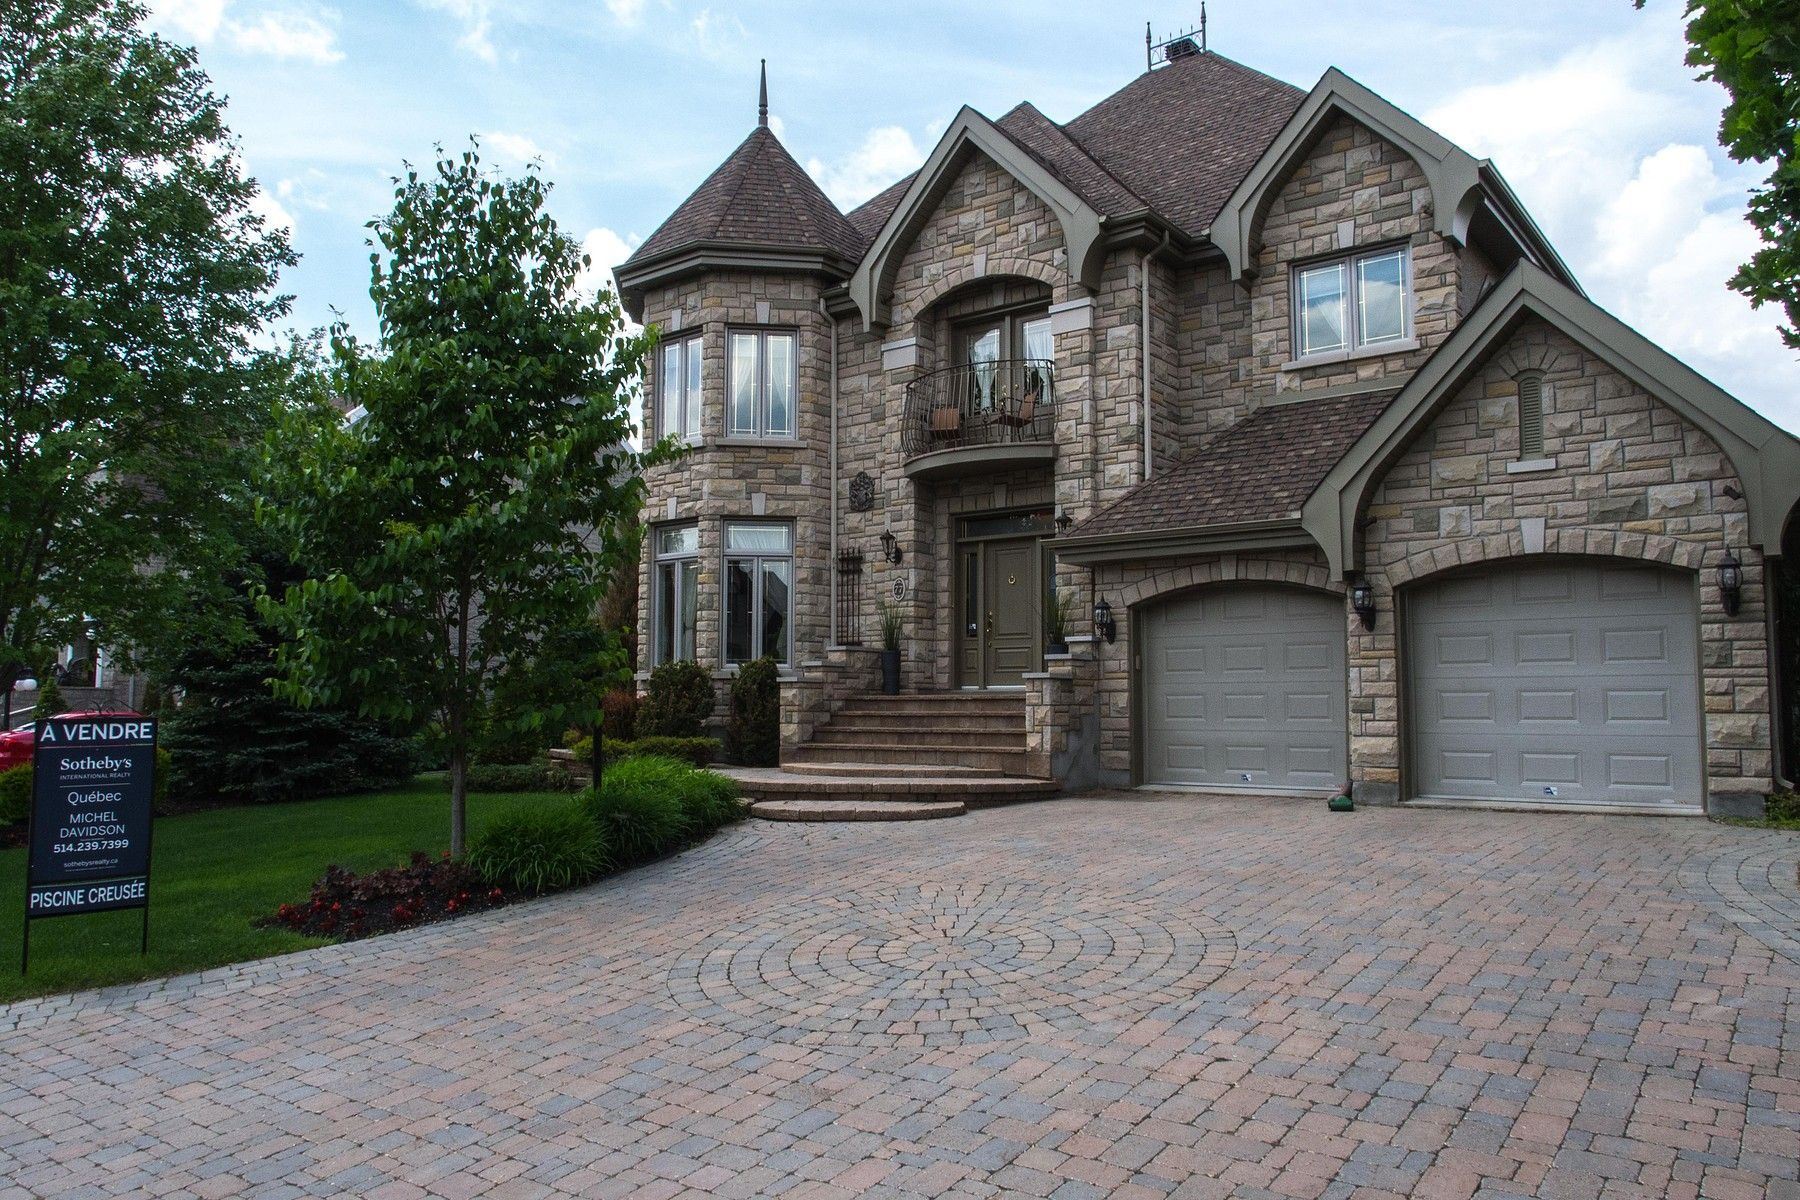 J7b1x5 Blainville Quebec Canada Luxury Real Estate And Homes For Sales Luxury Real Estate Luxury Homes Estate Homes